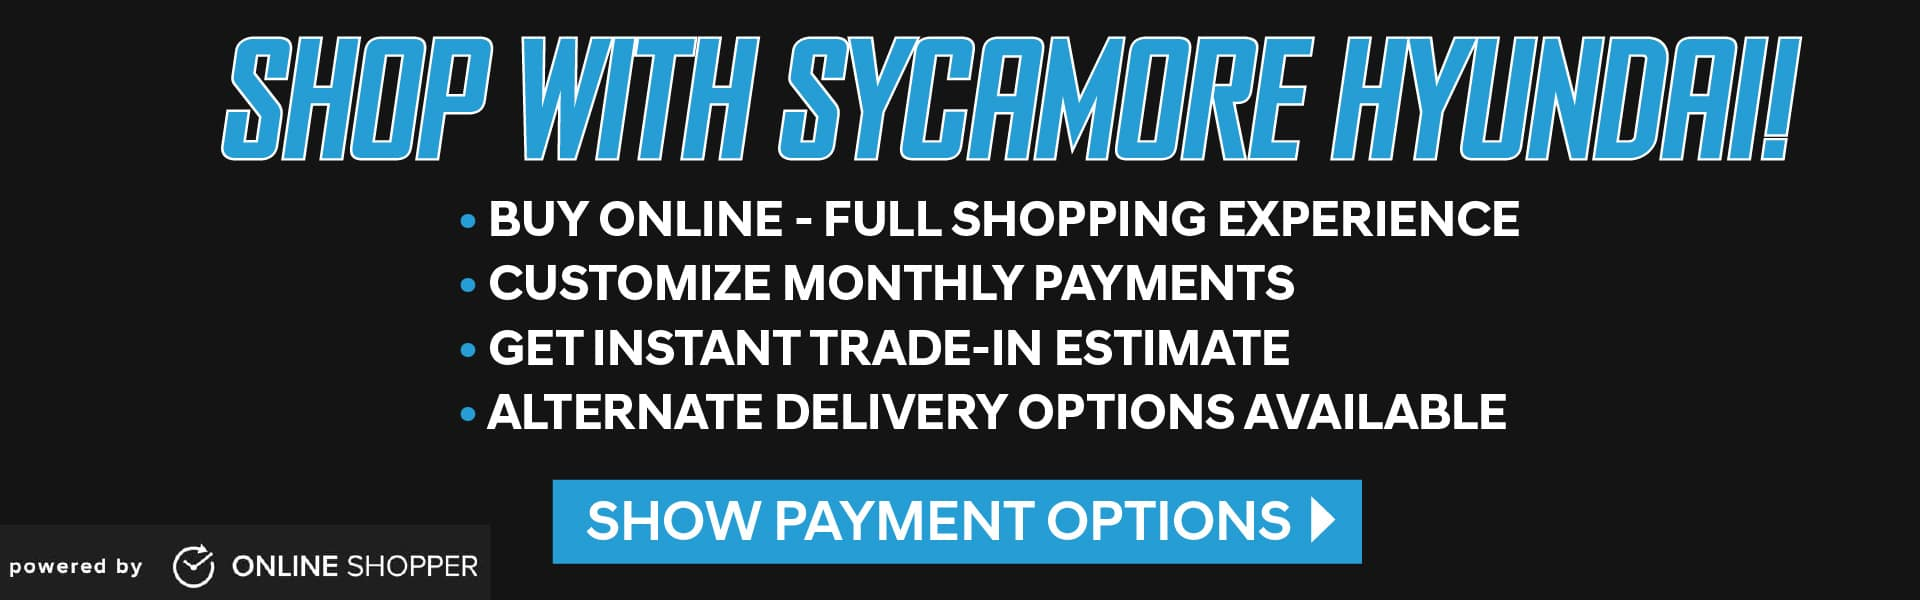 Buy Online with Sycamore Hyundai - click here for payment options